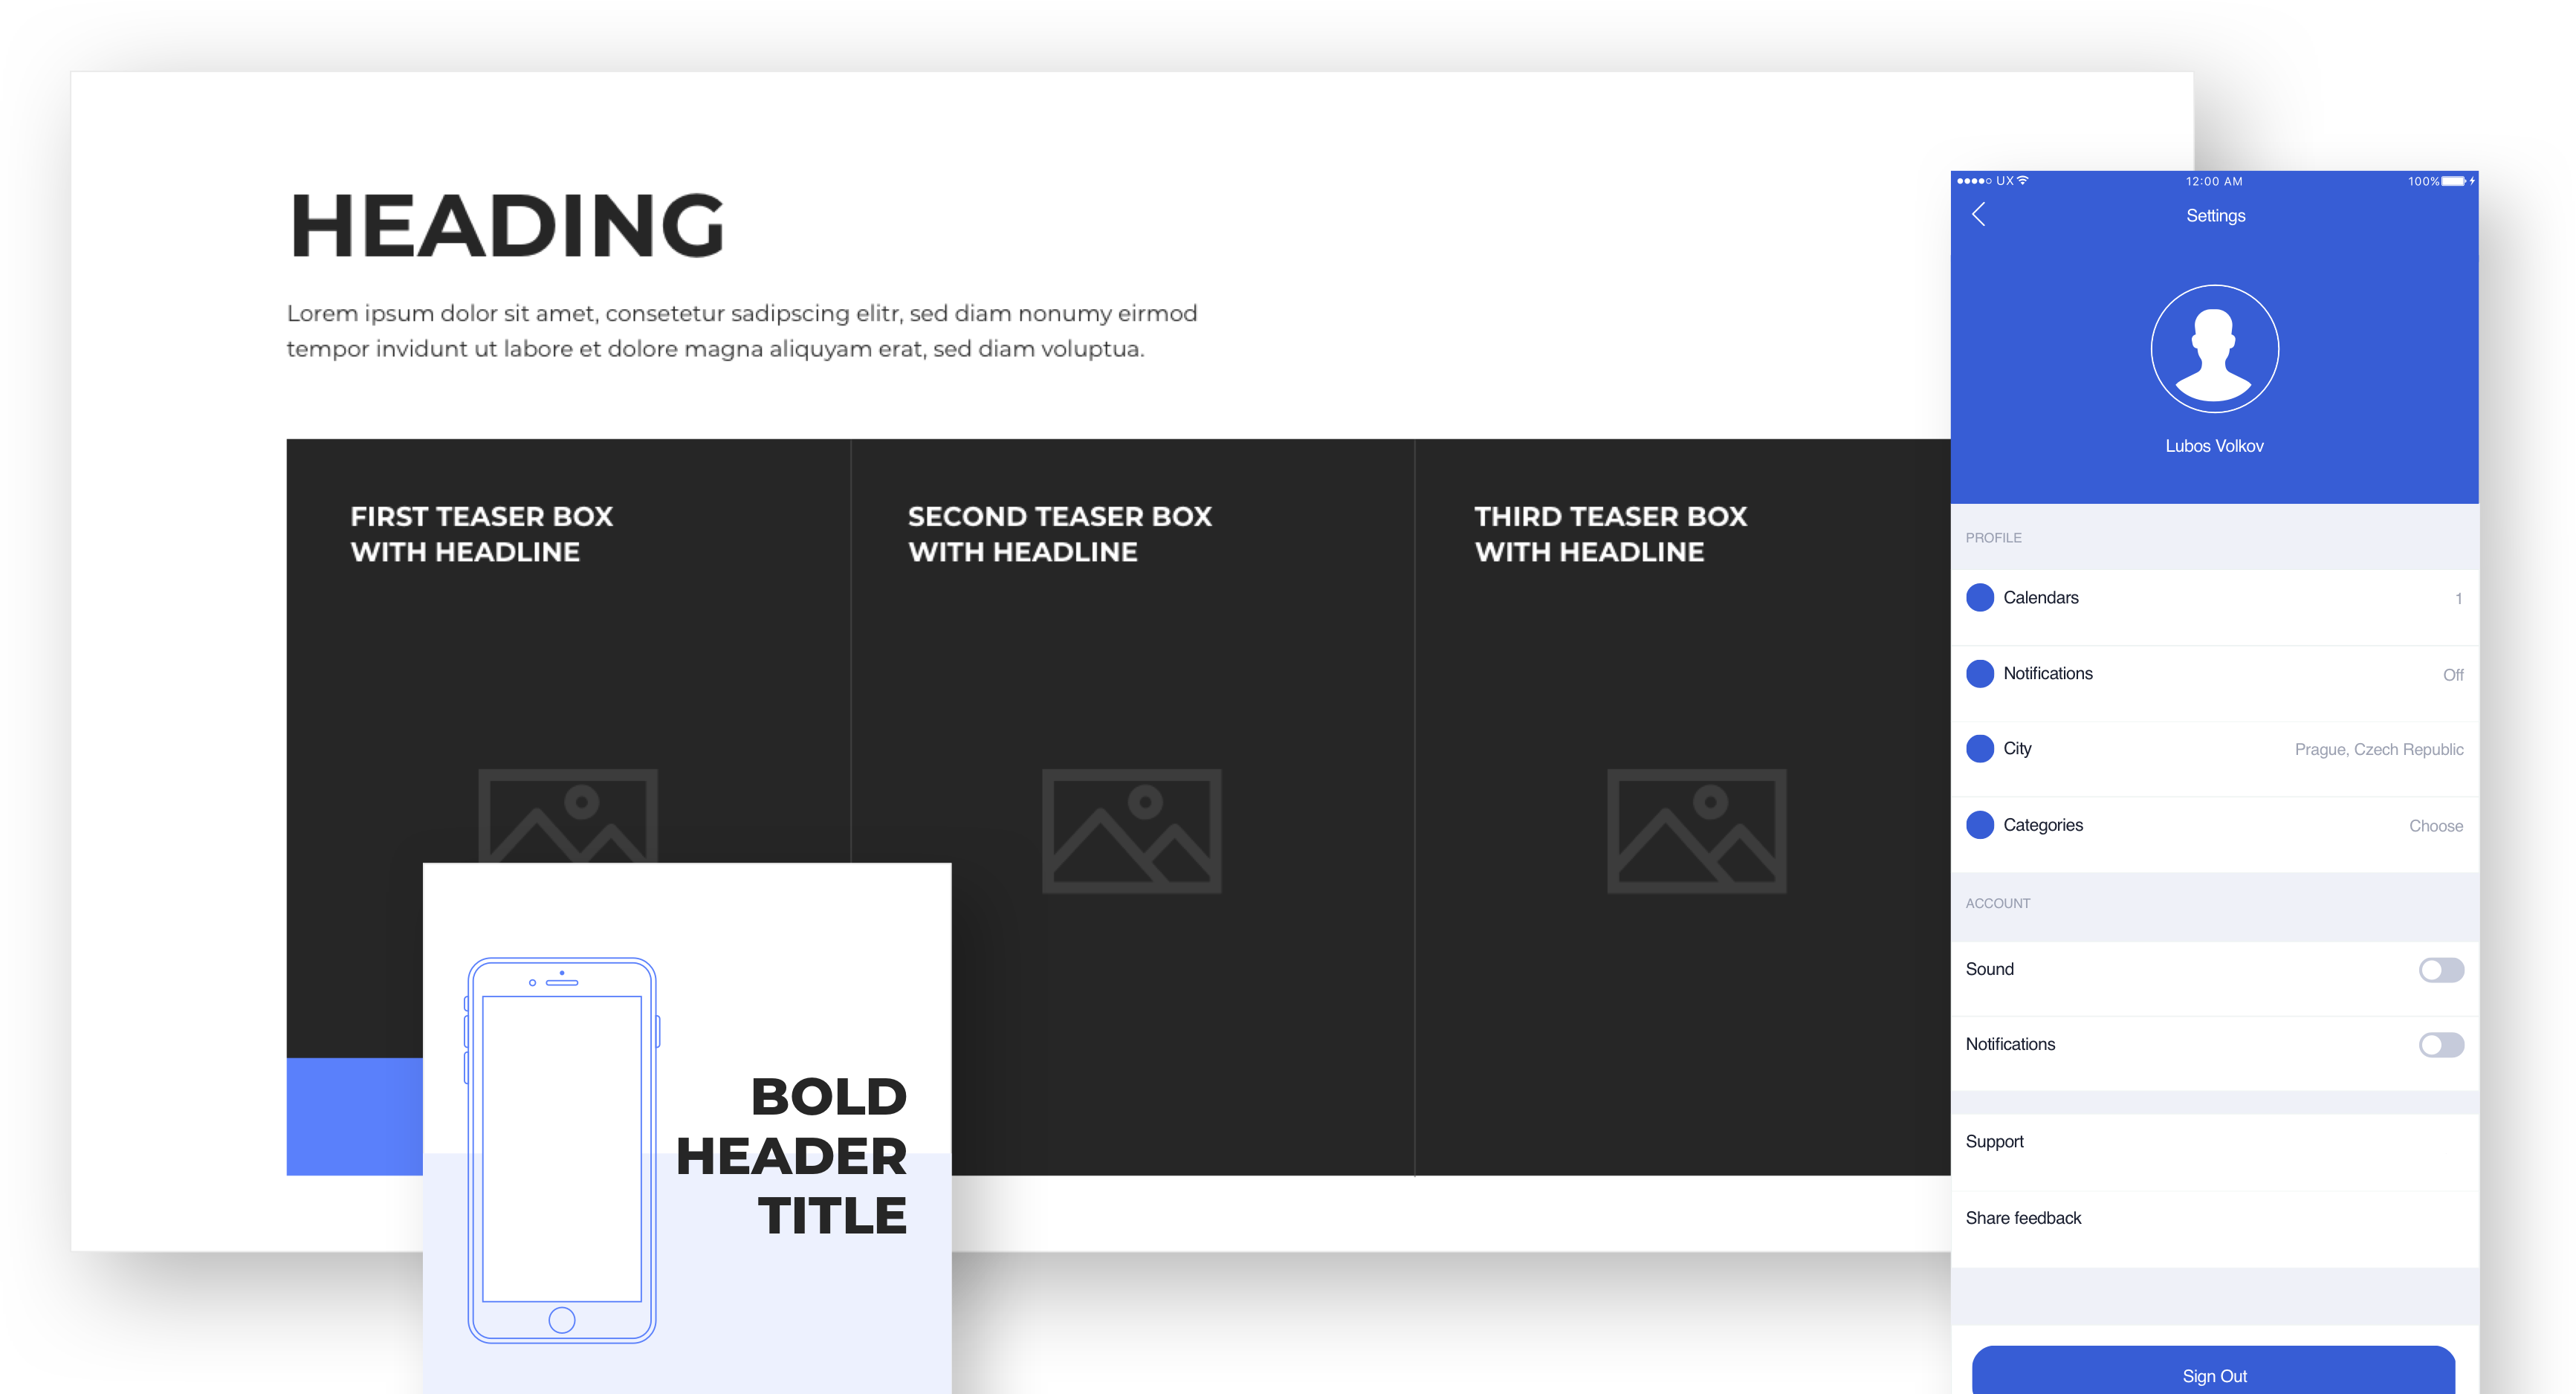 Speed up your workflow with ready-to-use Templates.